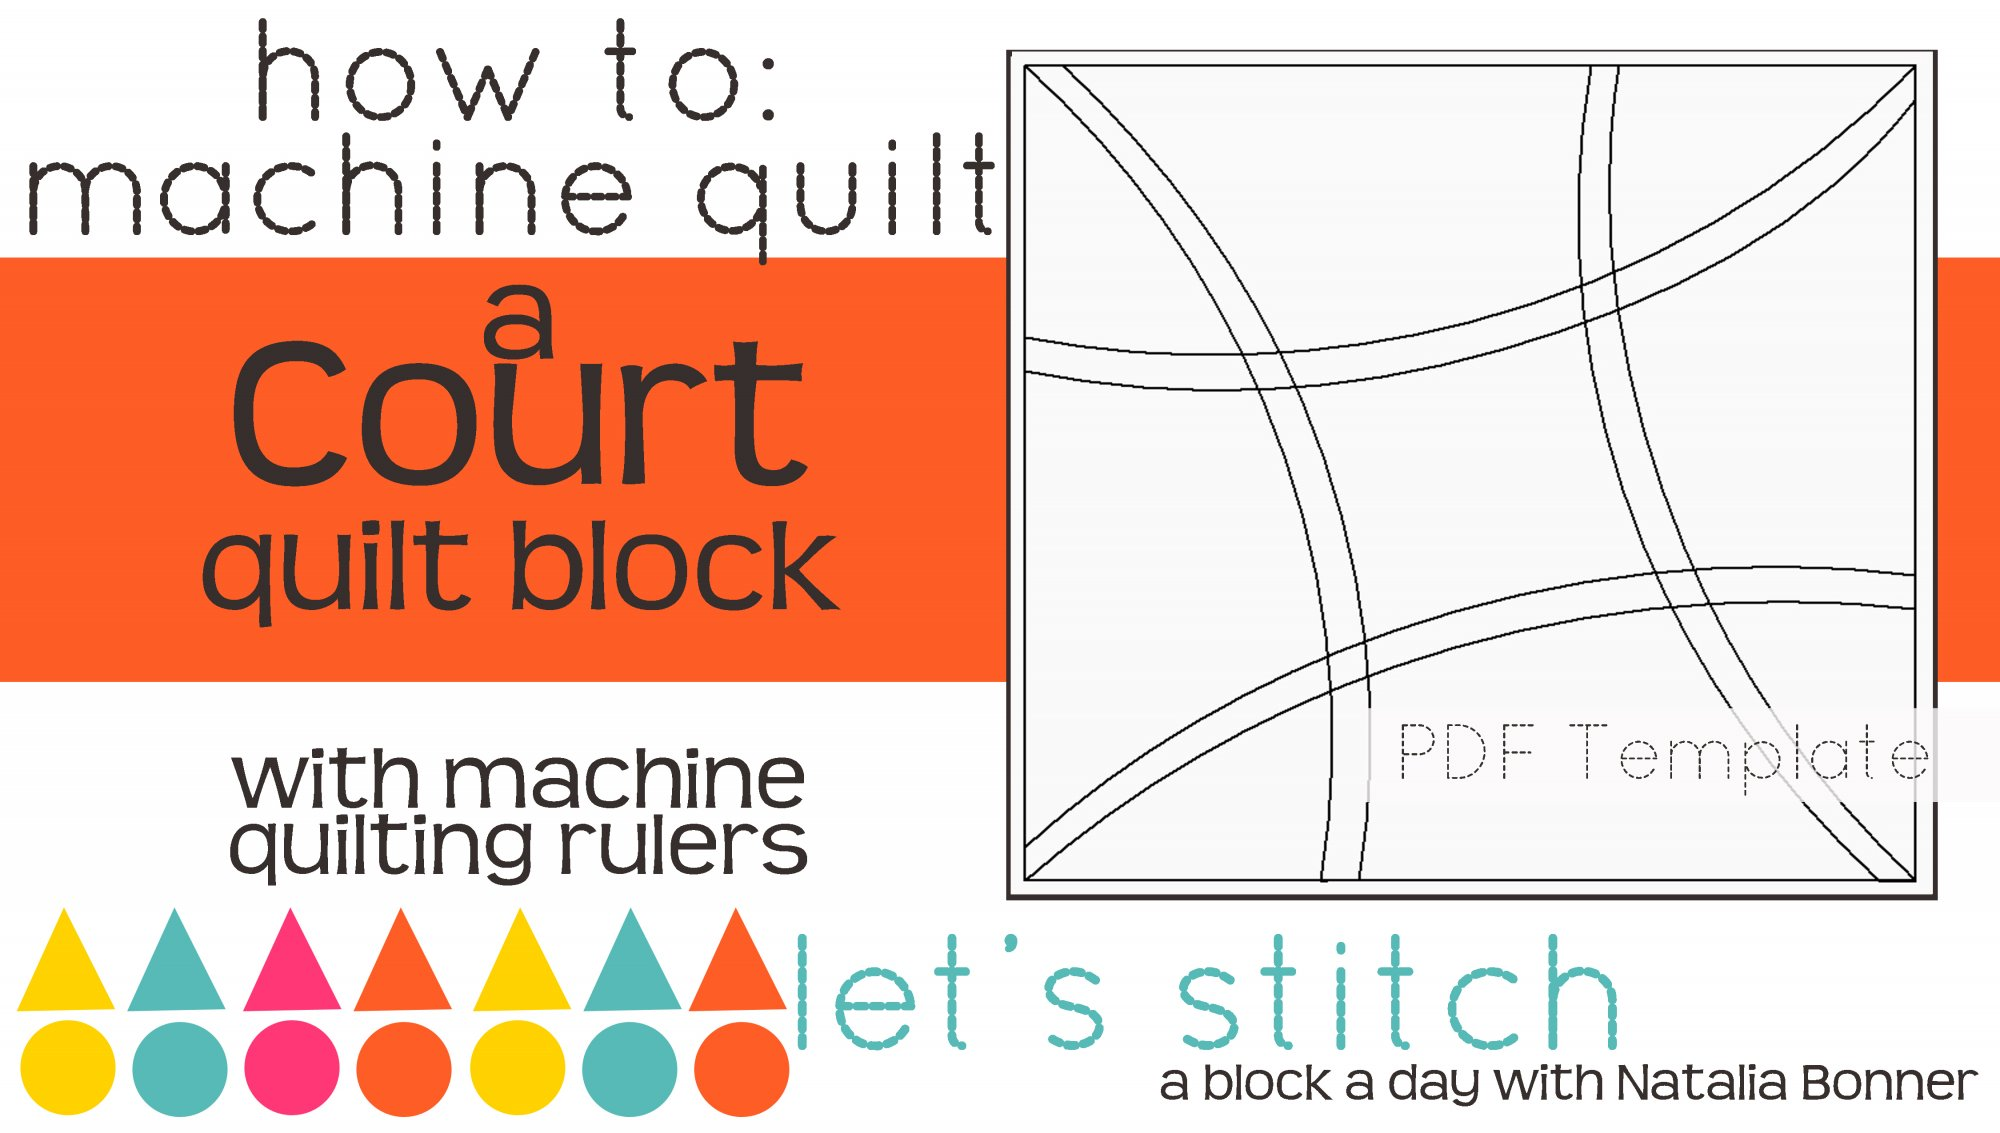 Let's Stitch - A Block a Day With Natalia Bonner - PDF - Court